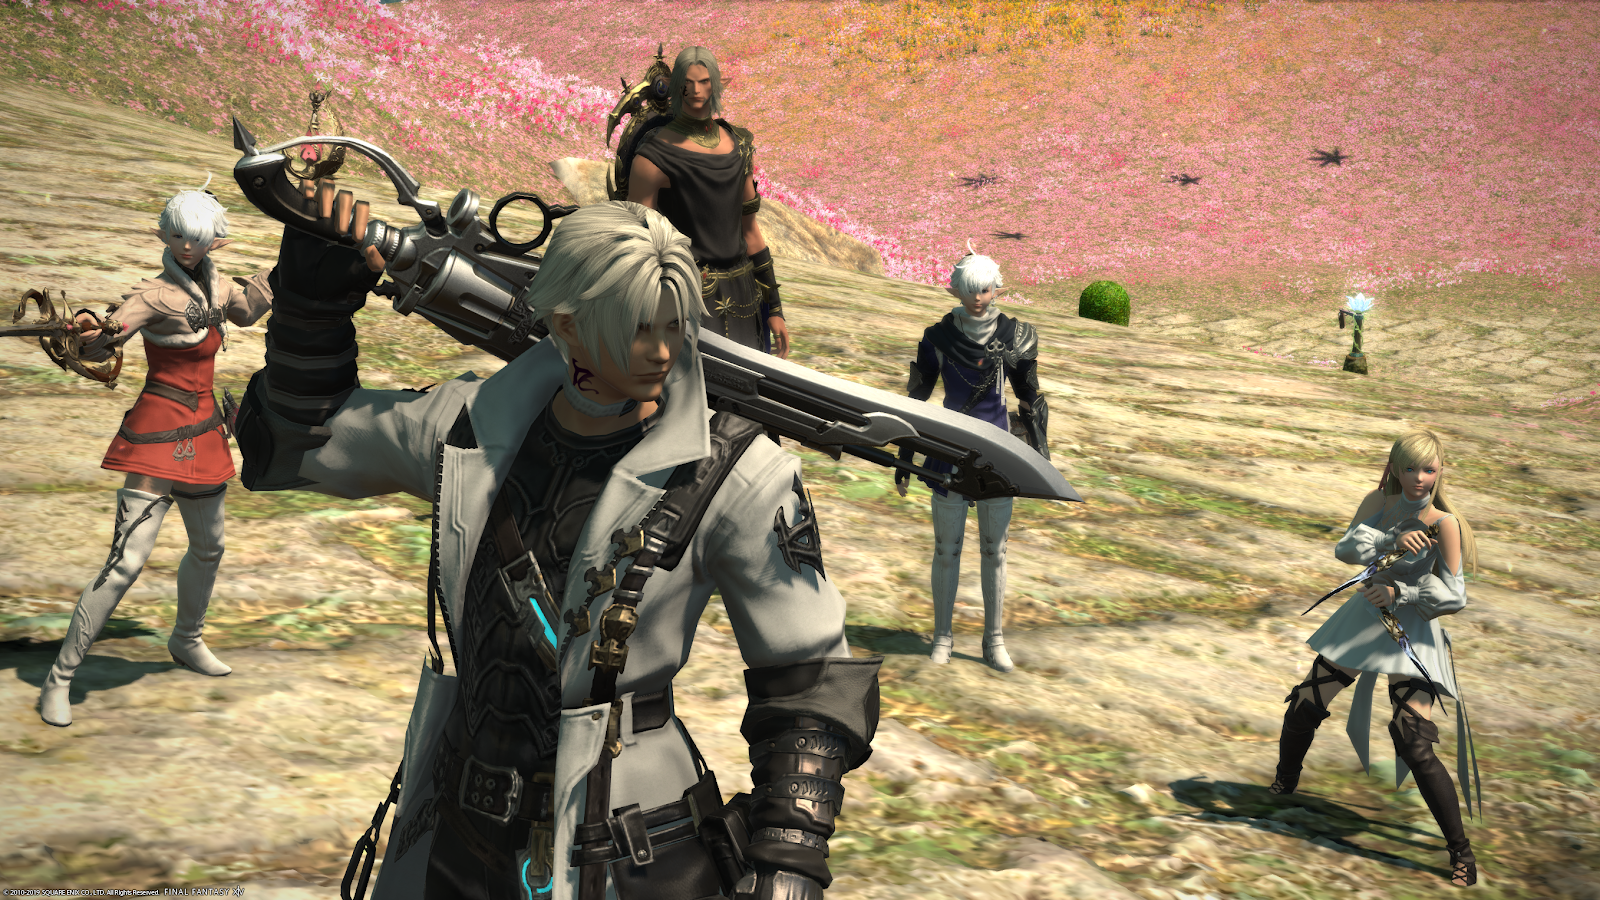 How To Get Into Final Fantasy XIV In 2019 | Kotaku Australia